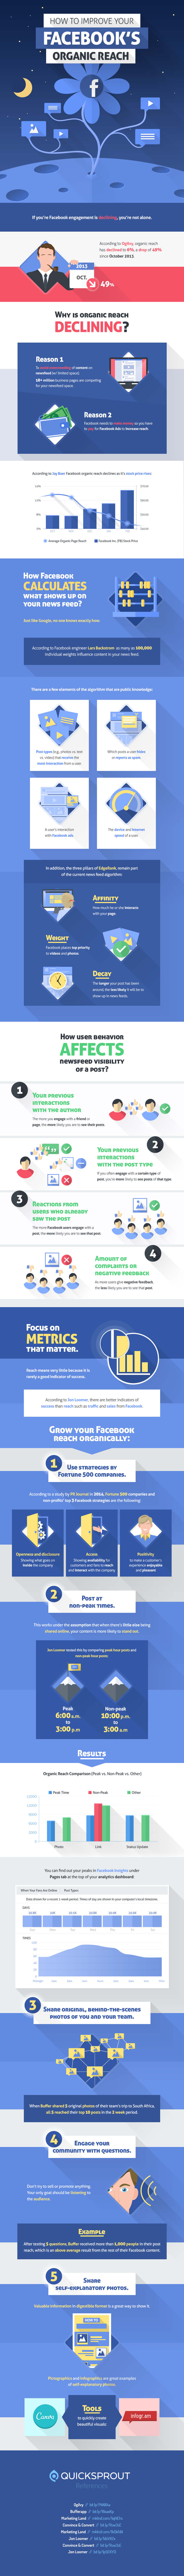 How-to-Improve-Your-Facebook-Organic-Reach-Infographic